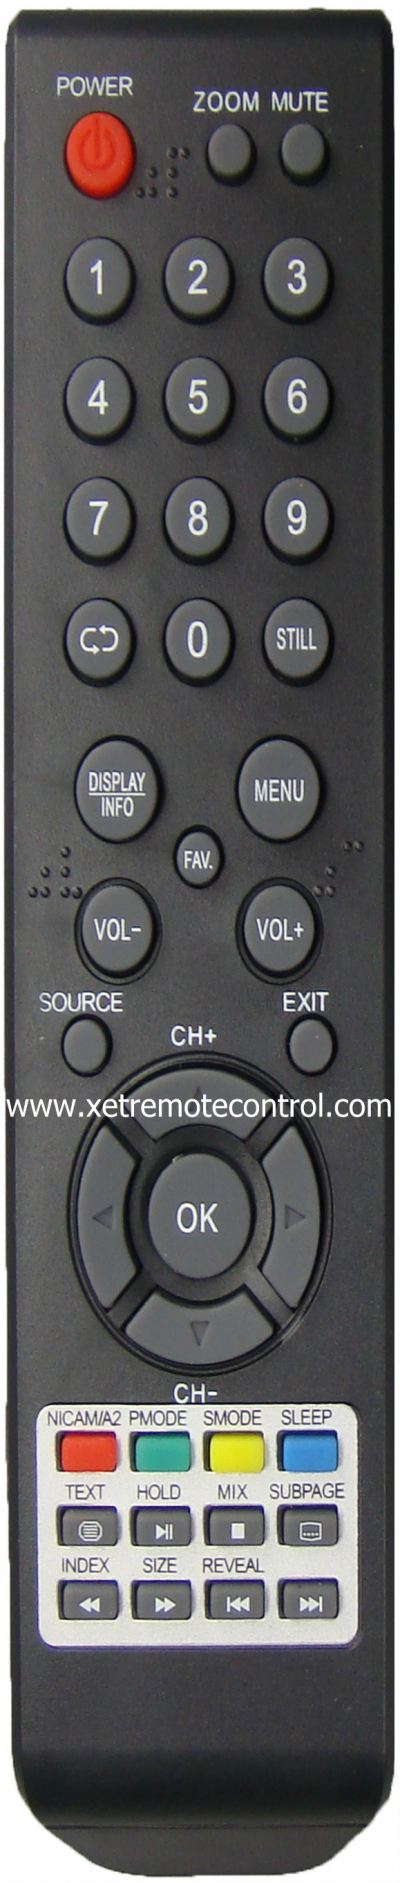 LED-22FHD MECK LED TV REMOTE CONTROL